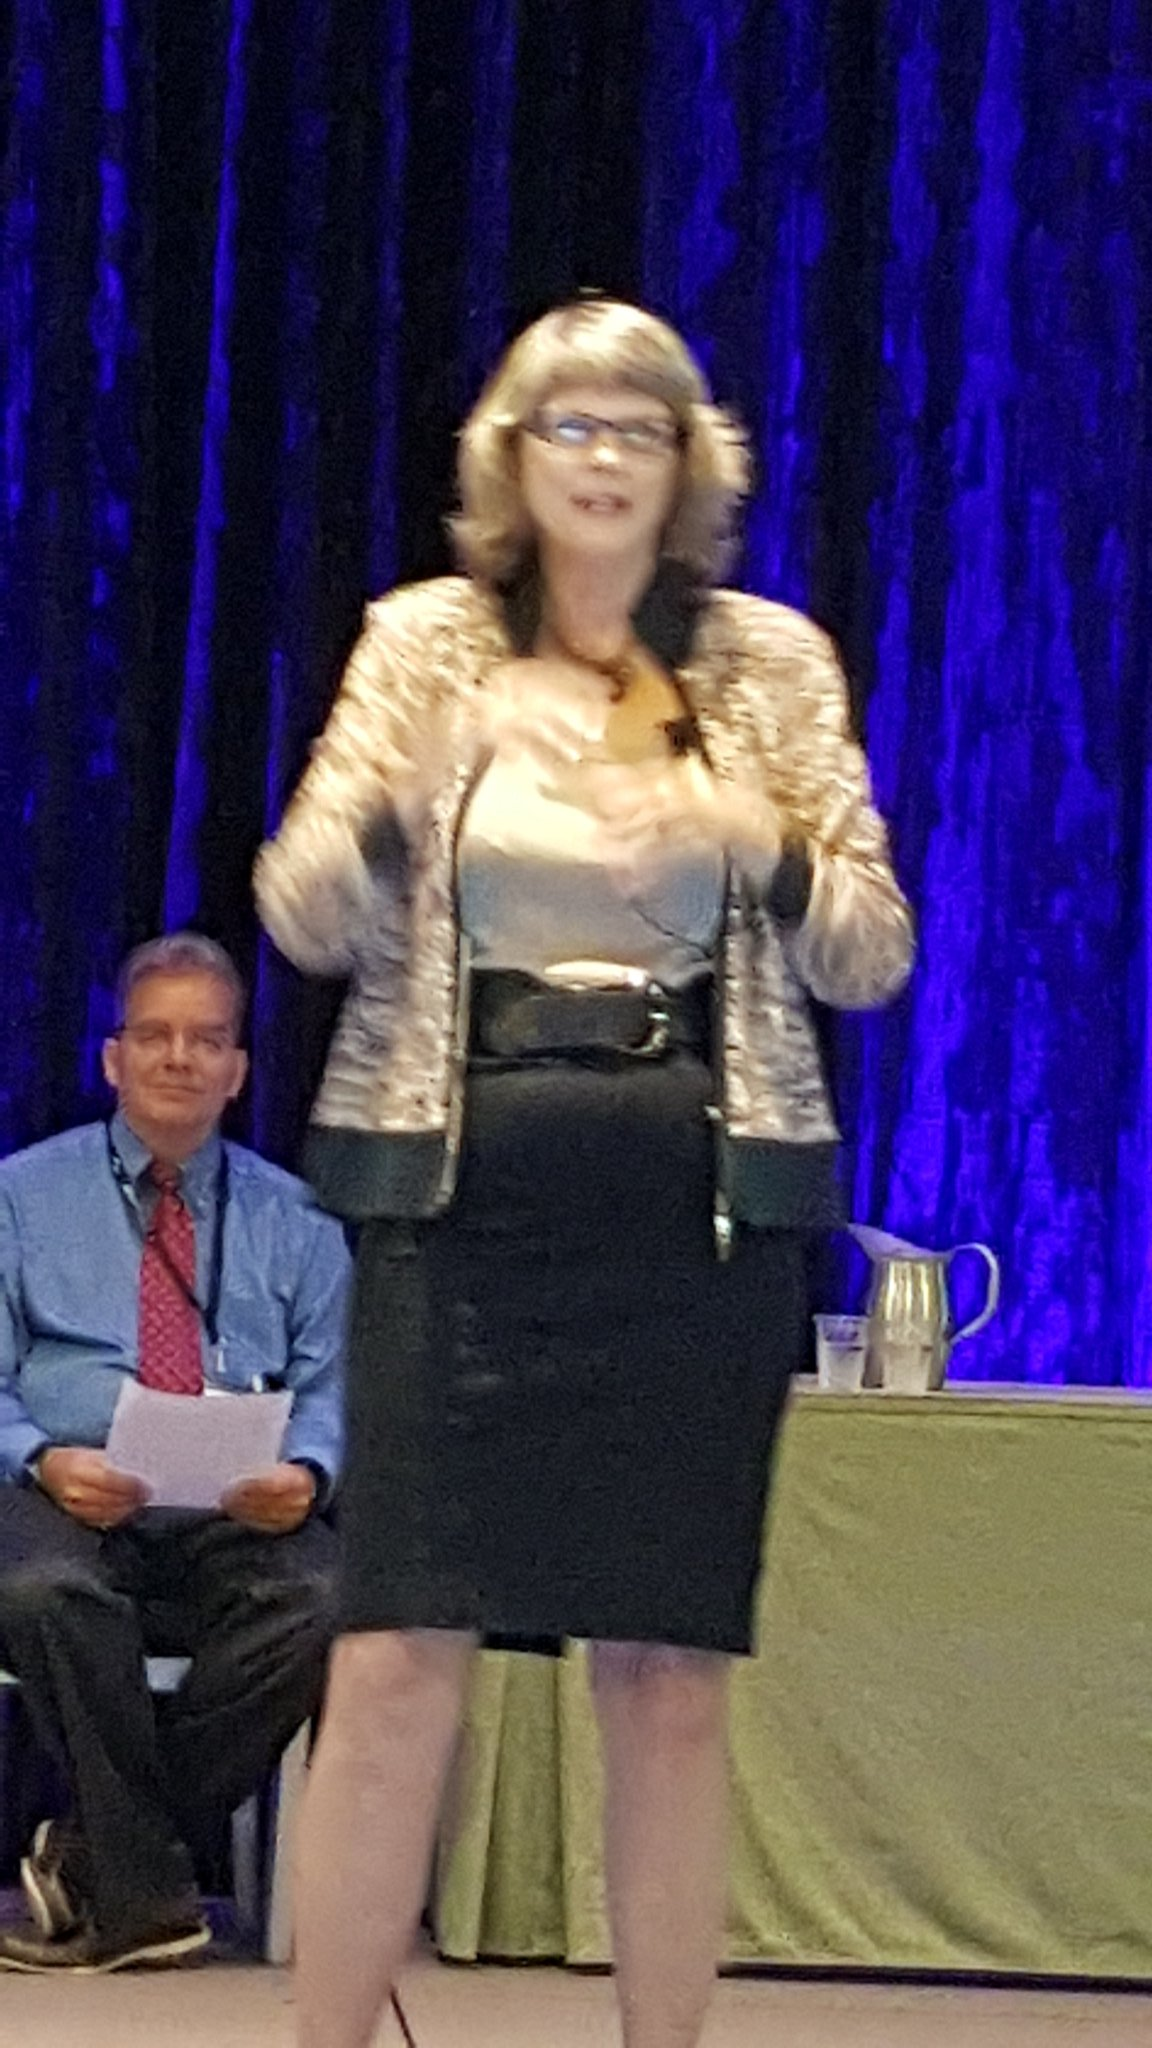 Tchr as stock broker, where invest most precious resource: time #NCTMregionals #presIgnite @CathySeeley https://t.co/BR8LAOLOpq